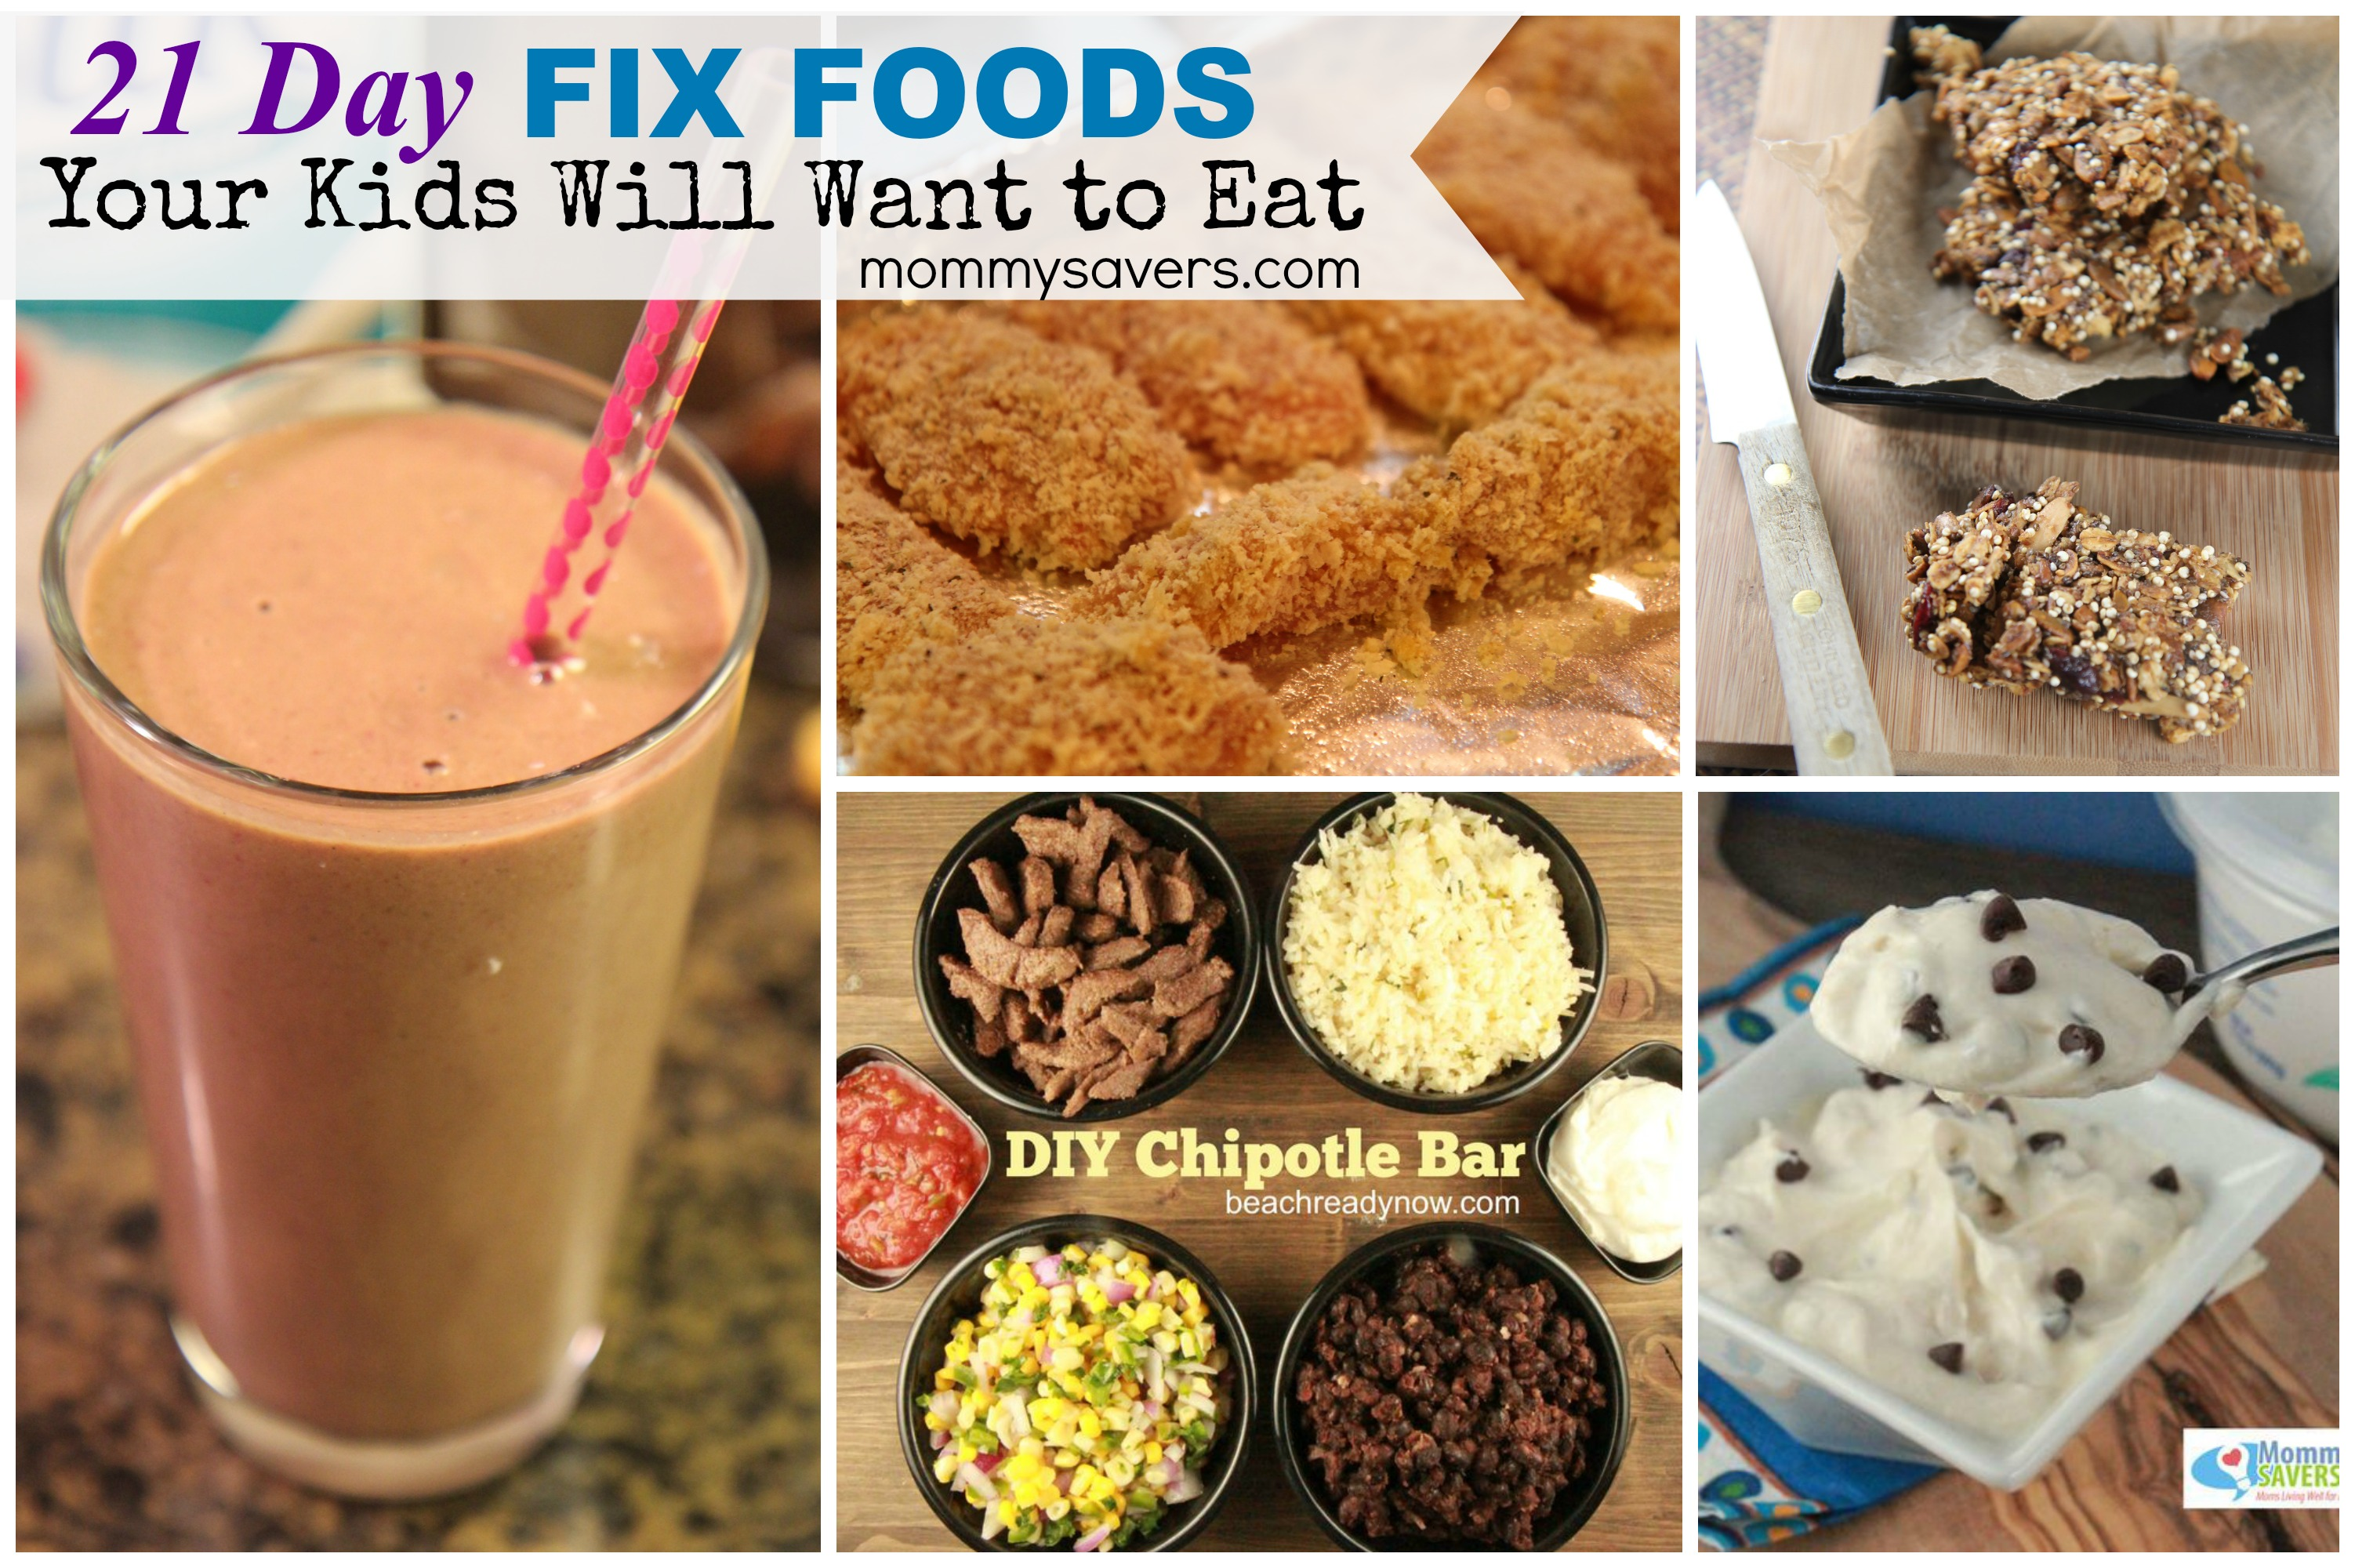 21 Day Fix Approved Foods